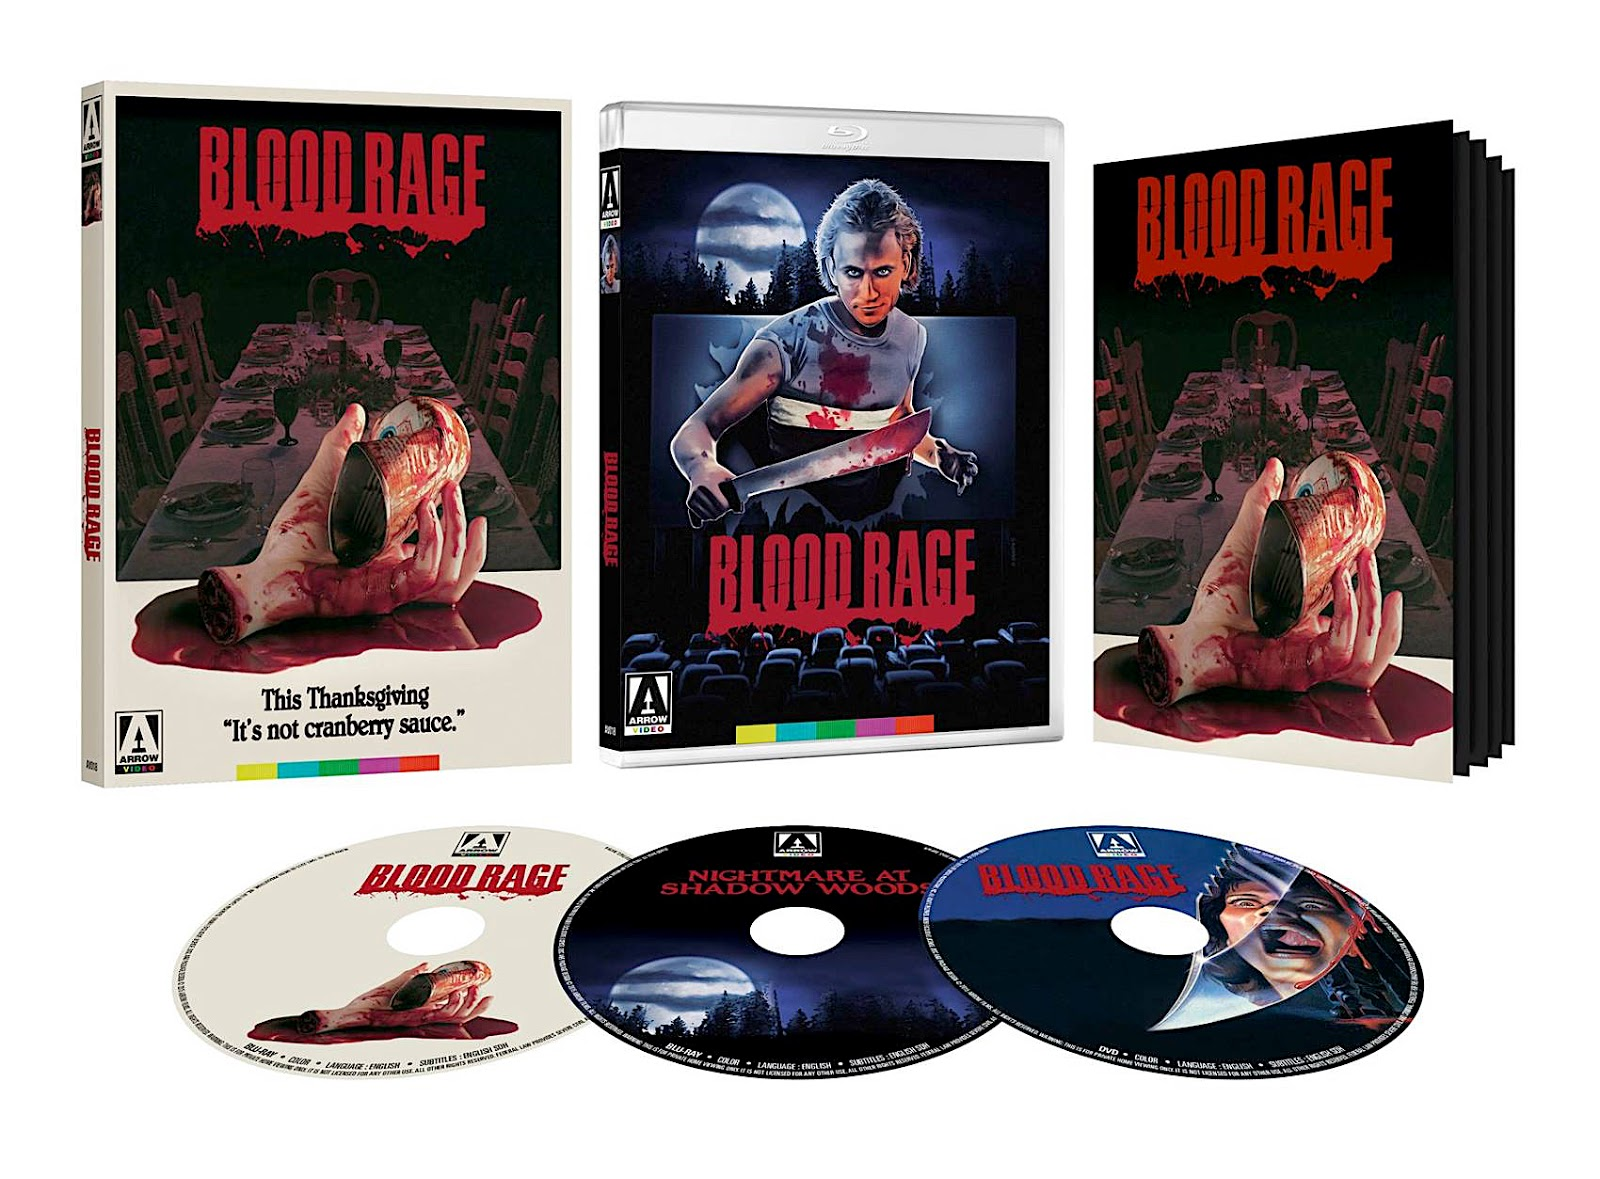 Blu-Ray And Dvd Covers Arrow Video Us Blu-Rays Blood -1967